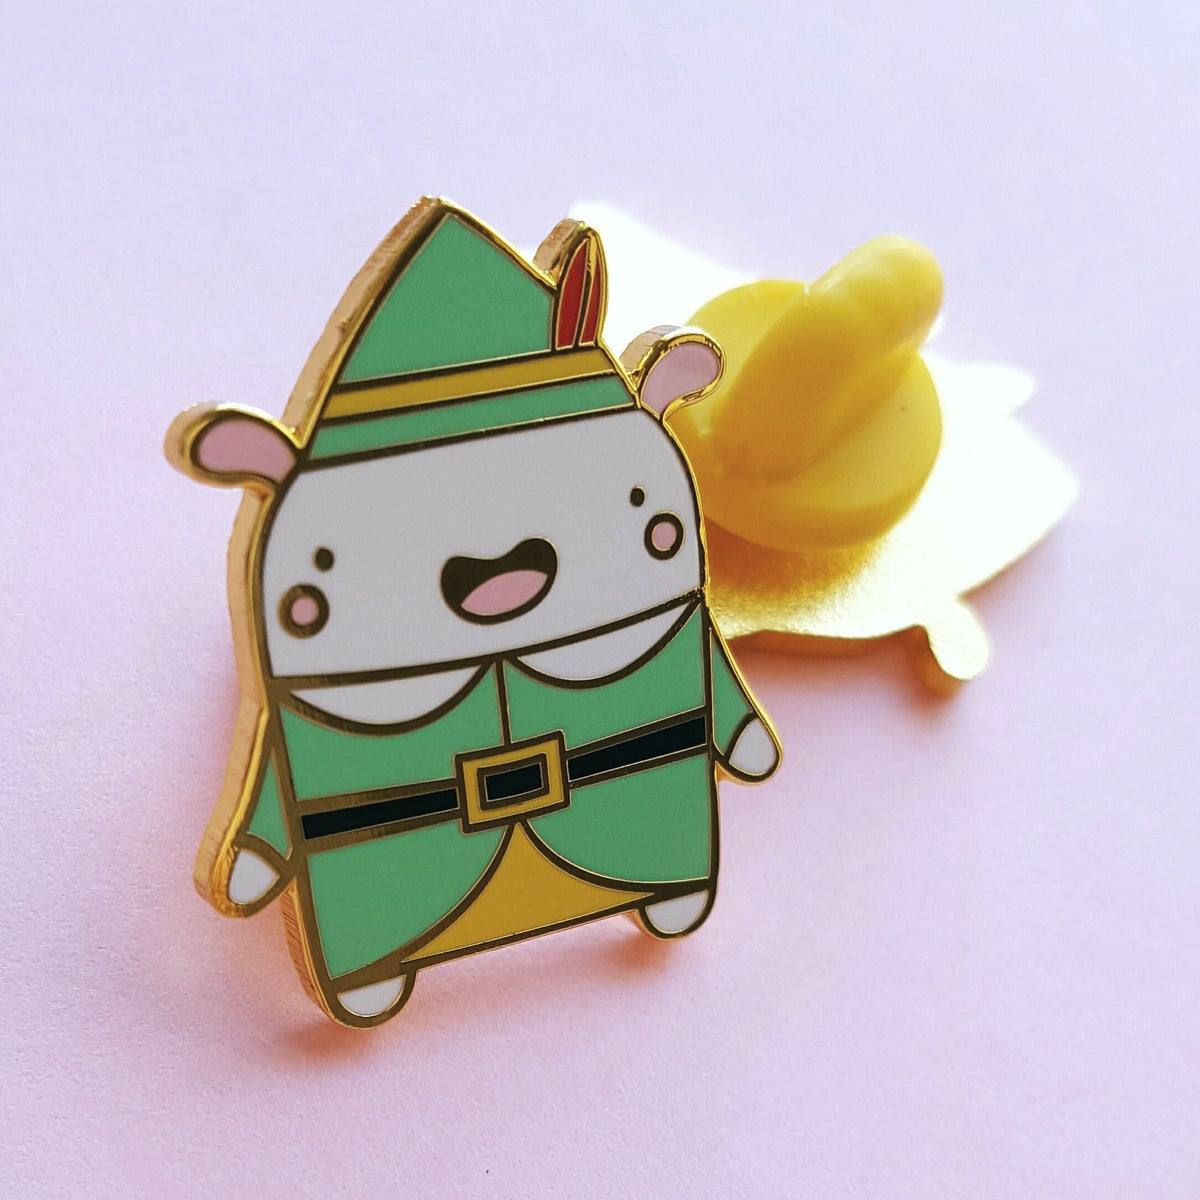 Buddy the Christmas Elf Critter - Hard Enamel Pin